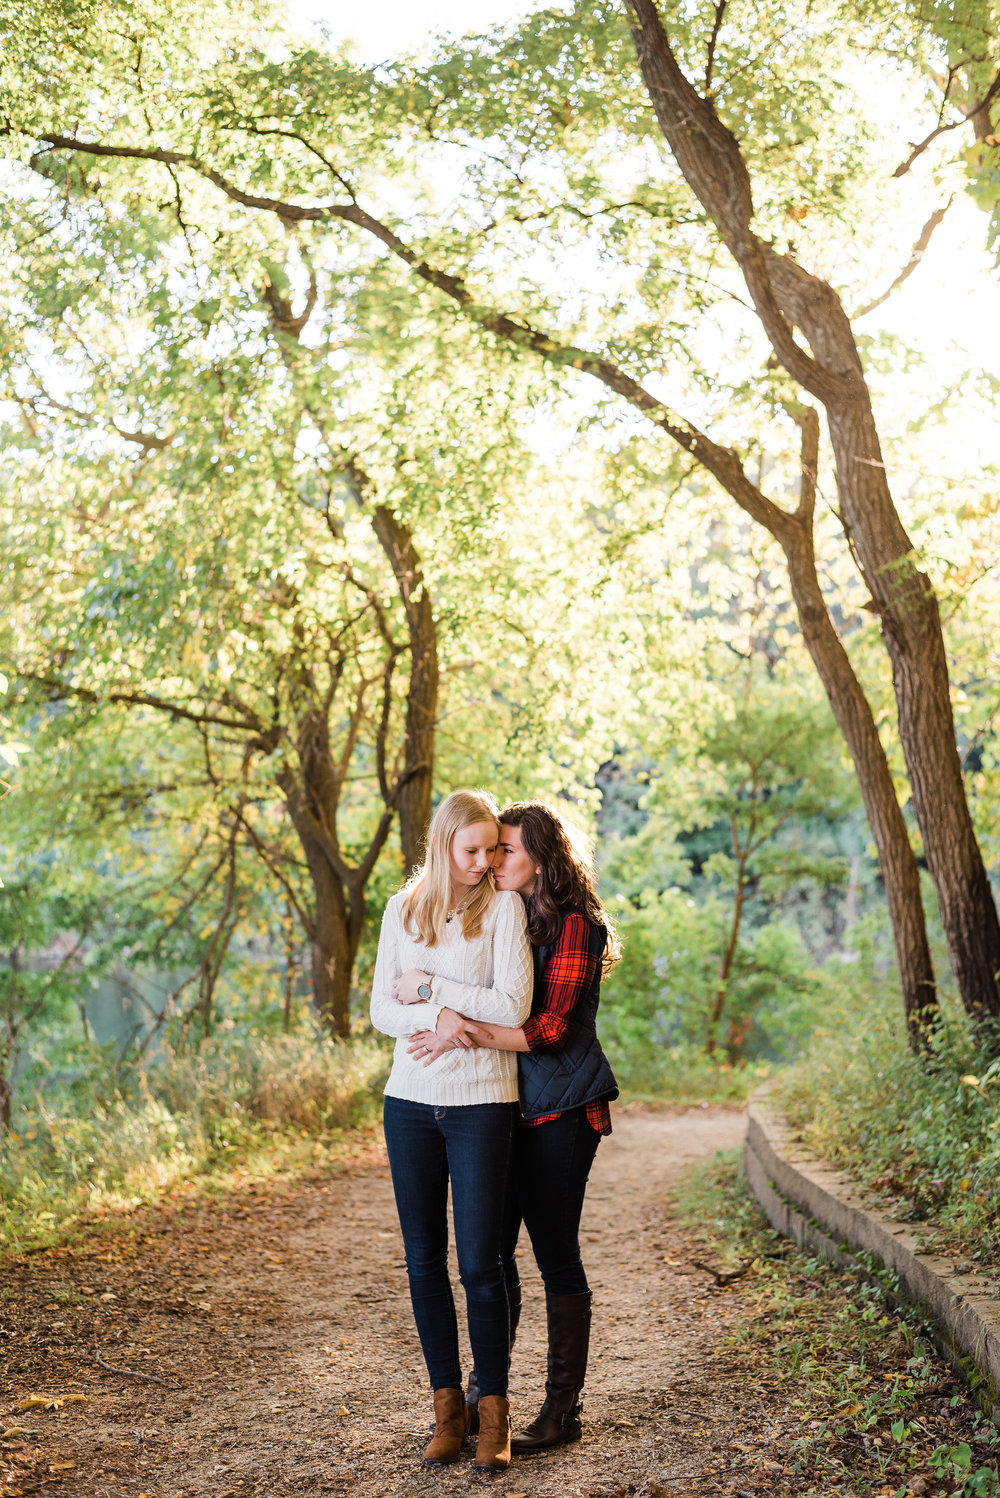 Macbride Lake State Park Engagement Session | Iowa City Wedding Photographer